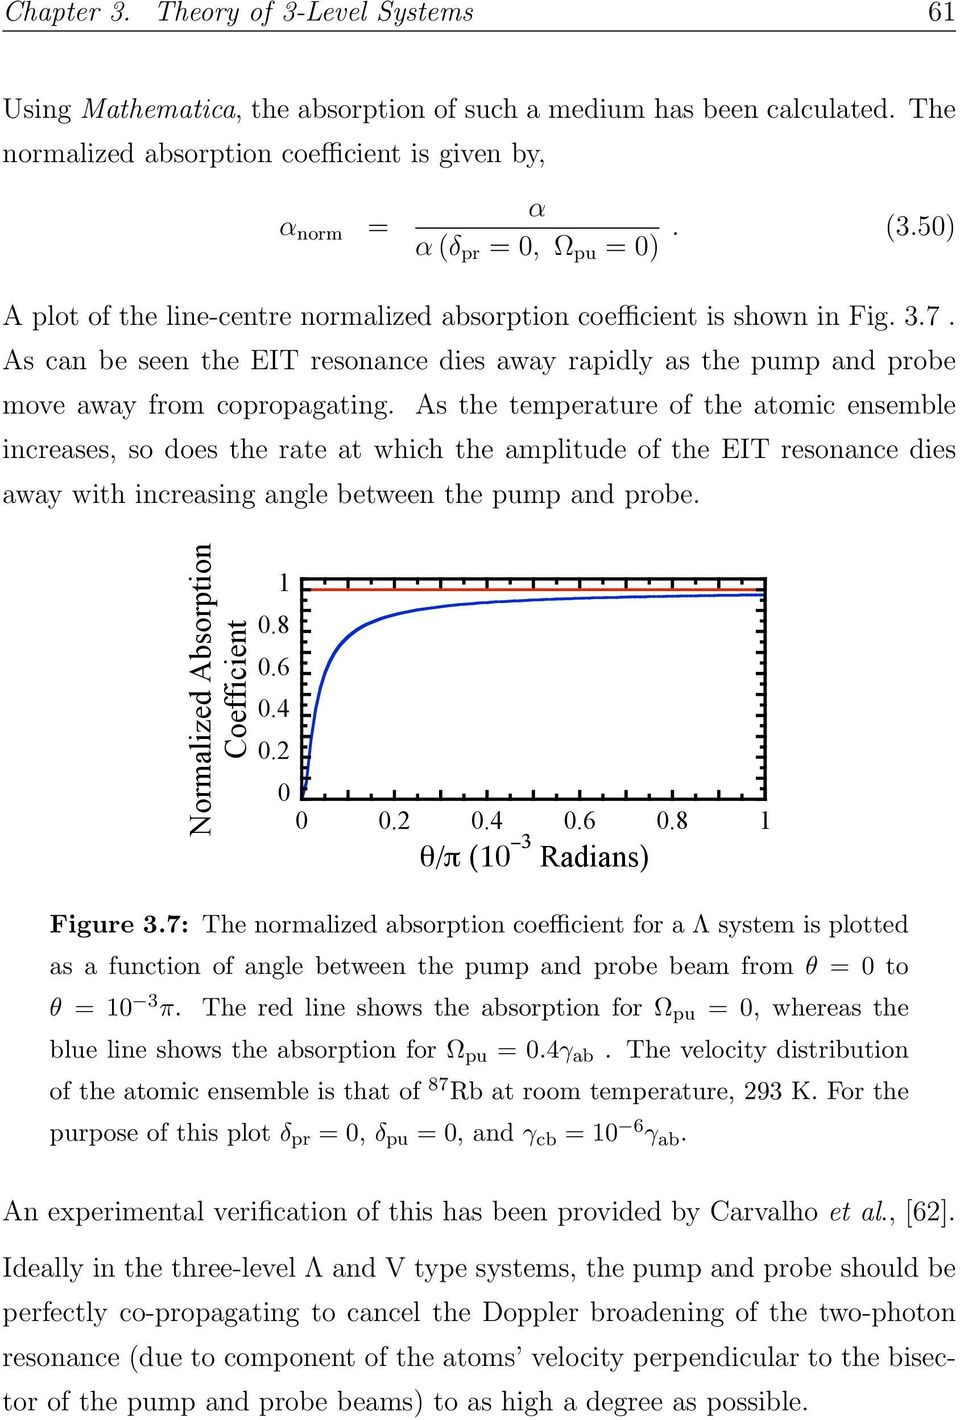 As the temperature of the atomic ensemble increases, so does the rate at which the amplitude of the EIT resonance dies away with increasing angle between the pump and probe.